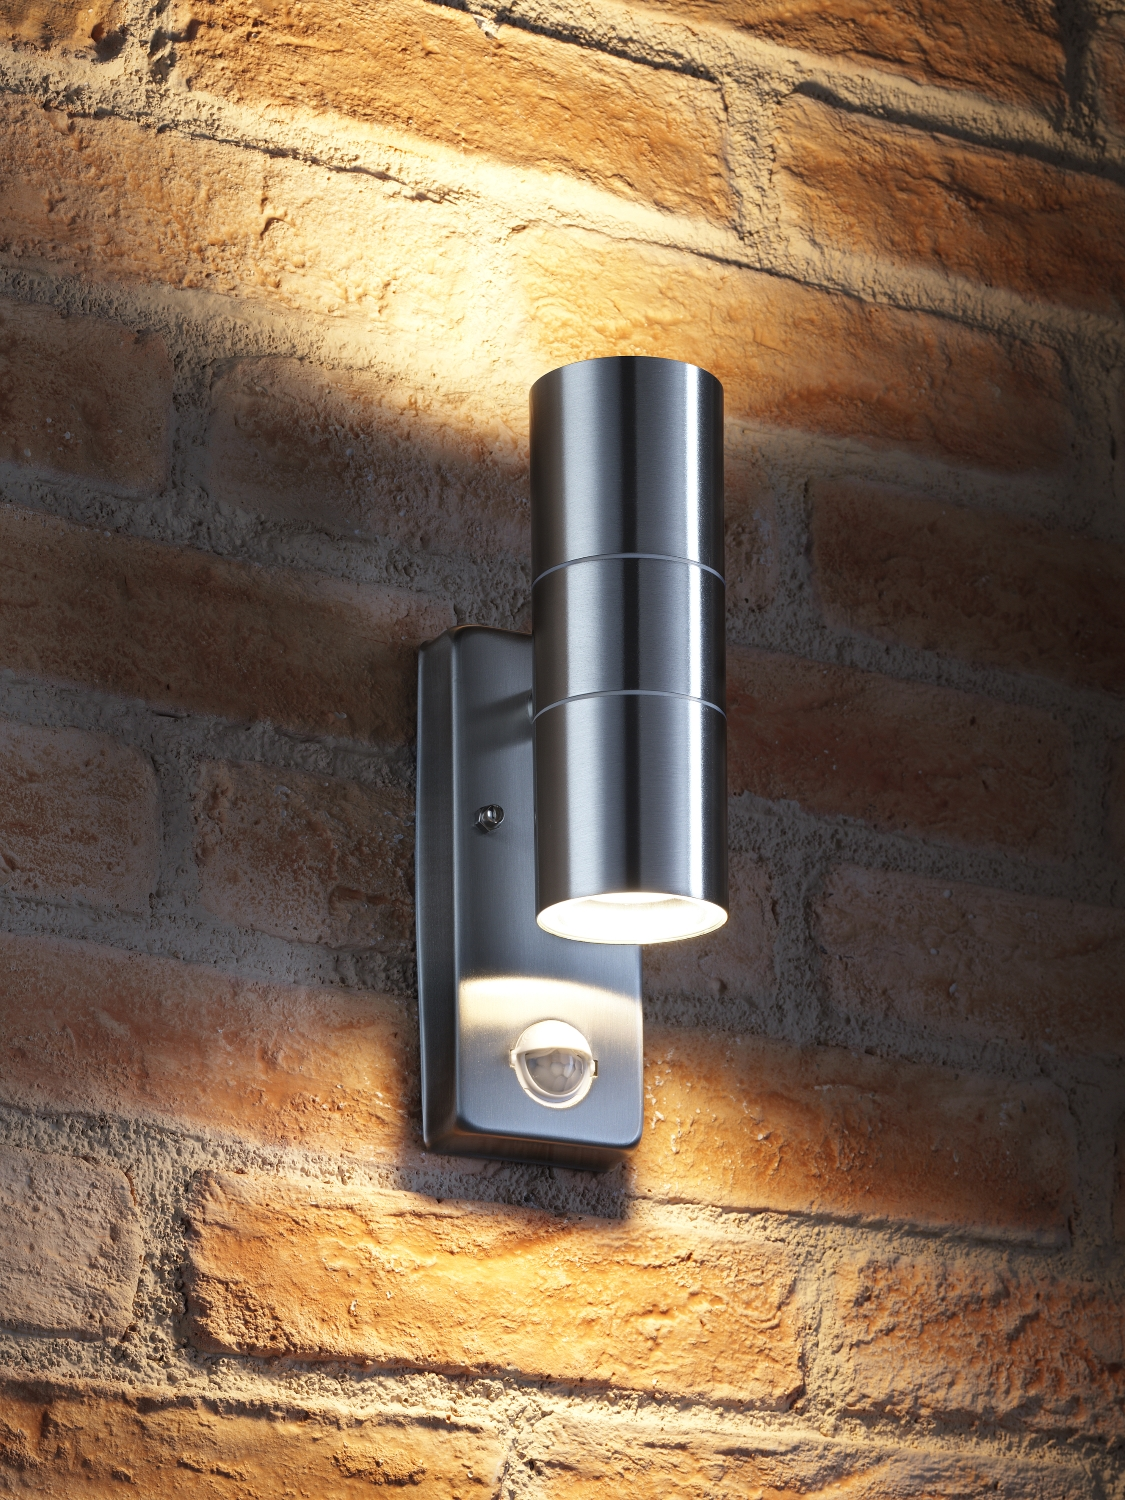 Auraglow Pir Motion Sensor Stainless Steel Up Down